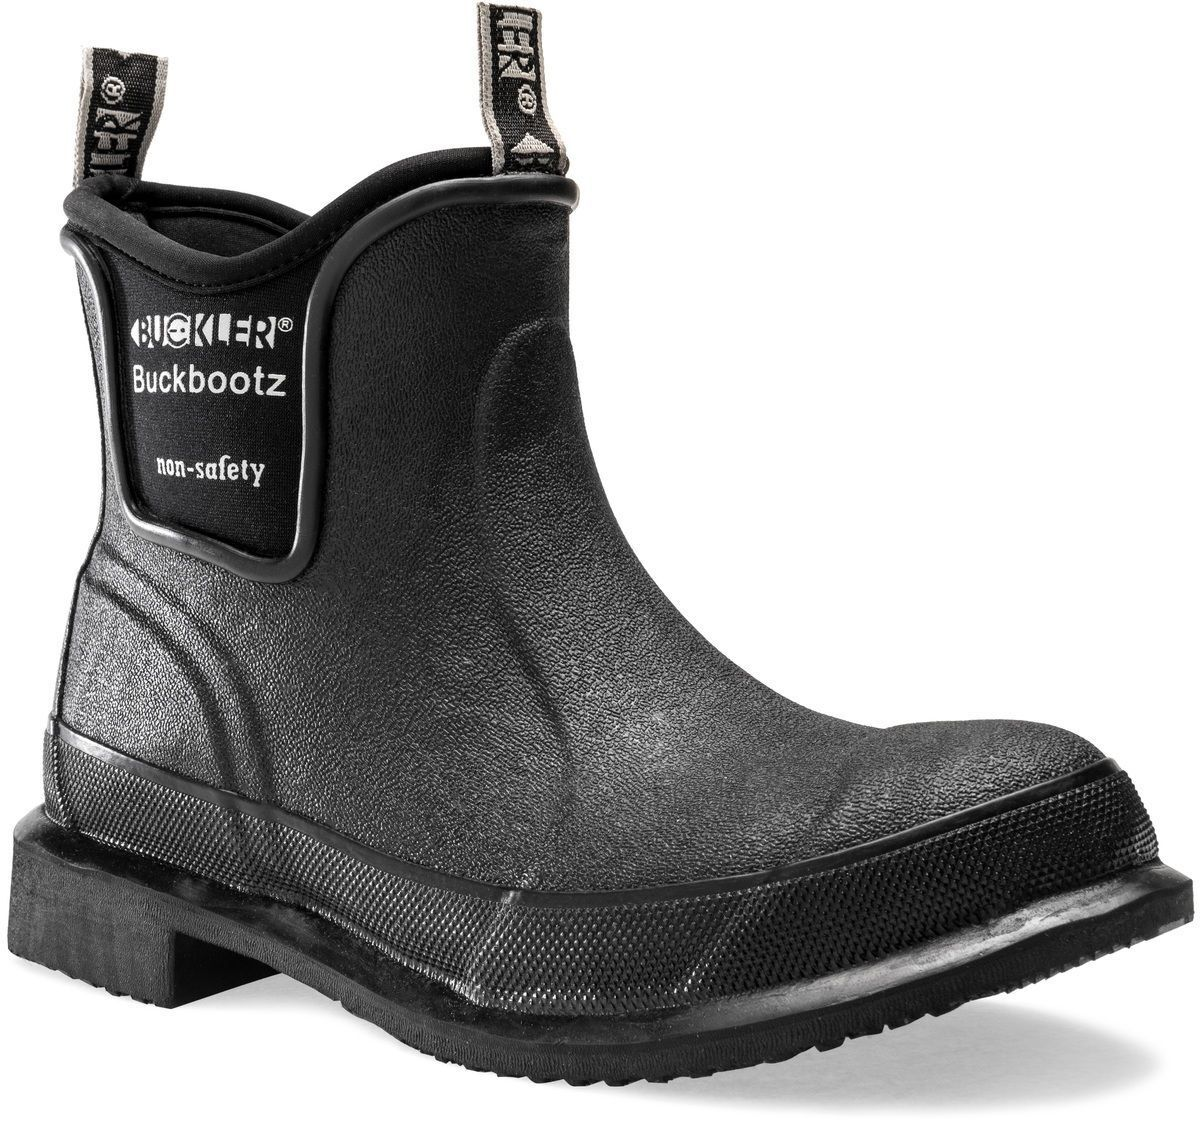 Buckler Buckbootz BBZ5333 size Springer non-safety ladies wellington size BBZ5333 4/38 - 8/42 b9862b